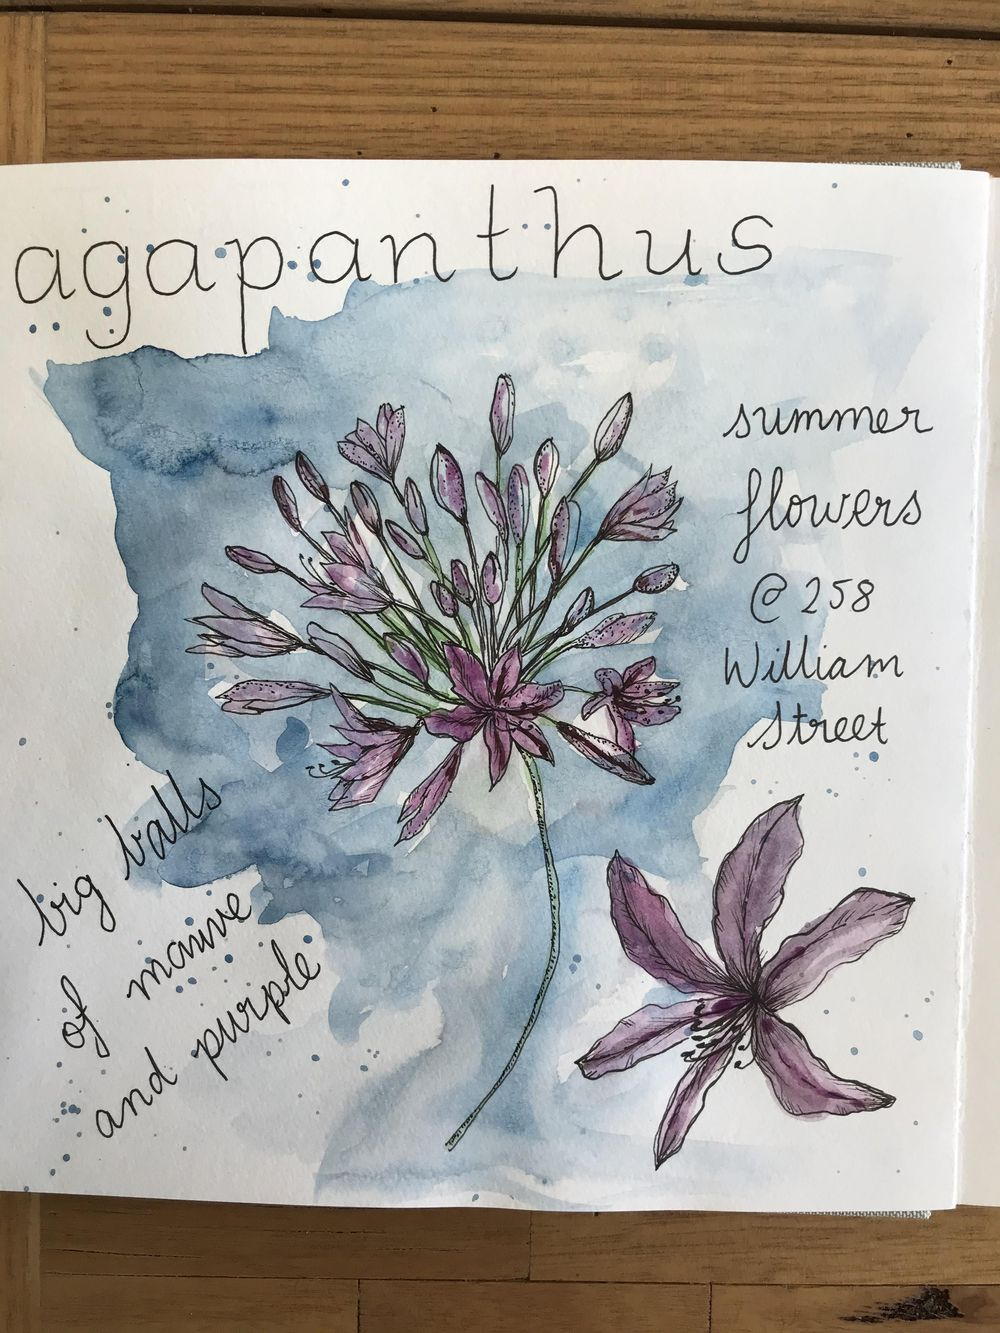 Agapanthus - image 1 - student project